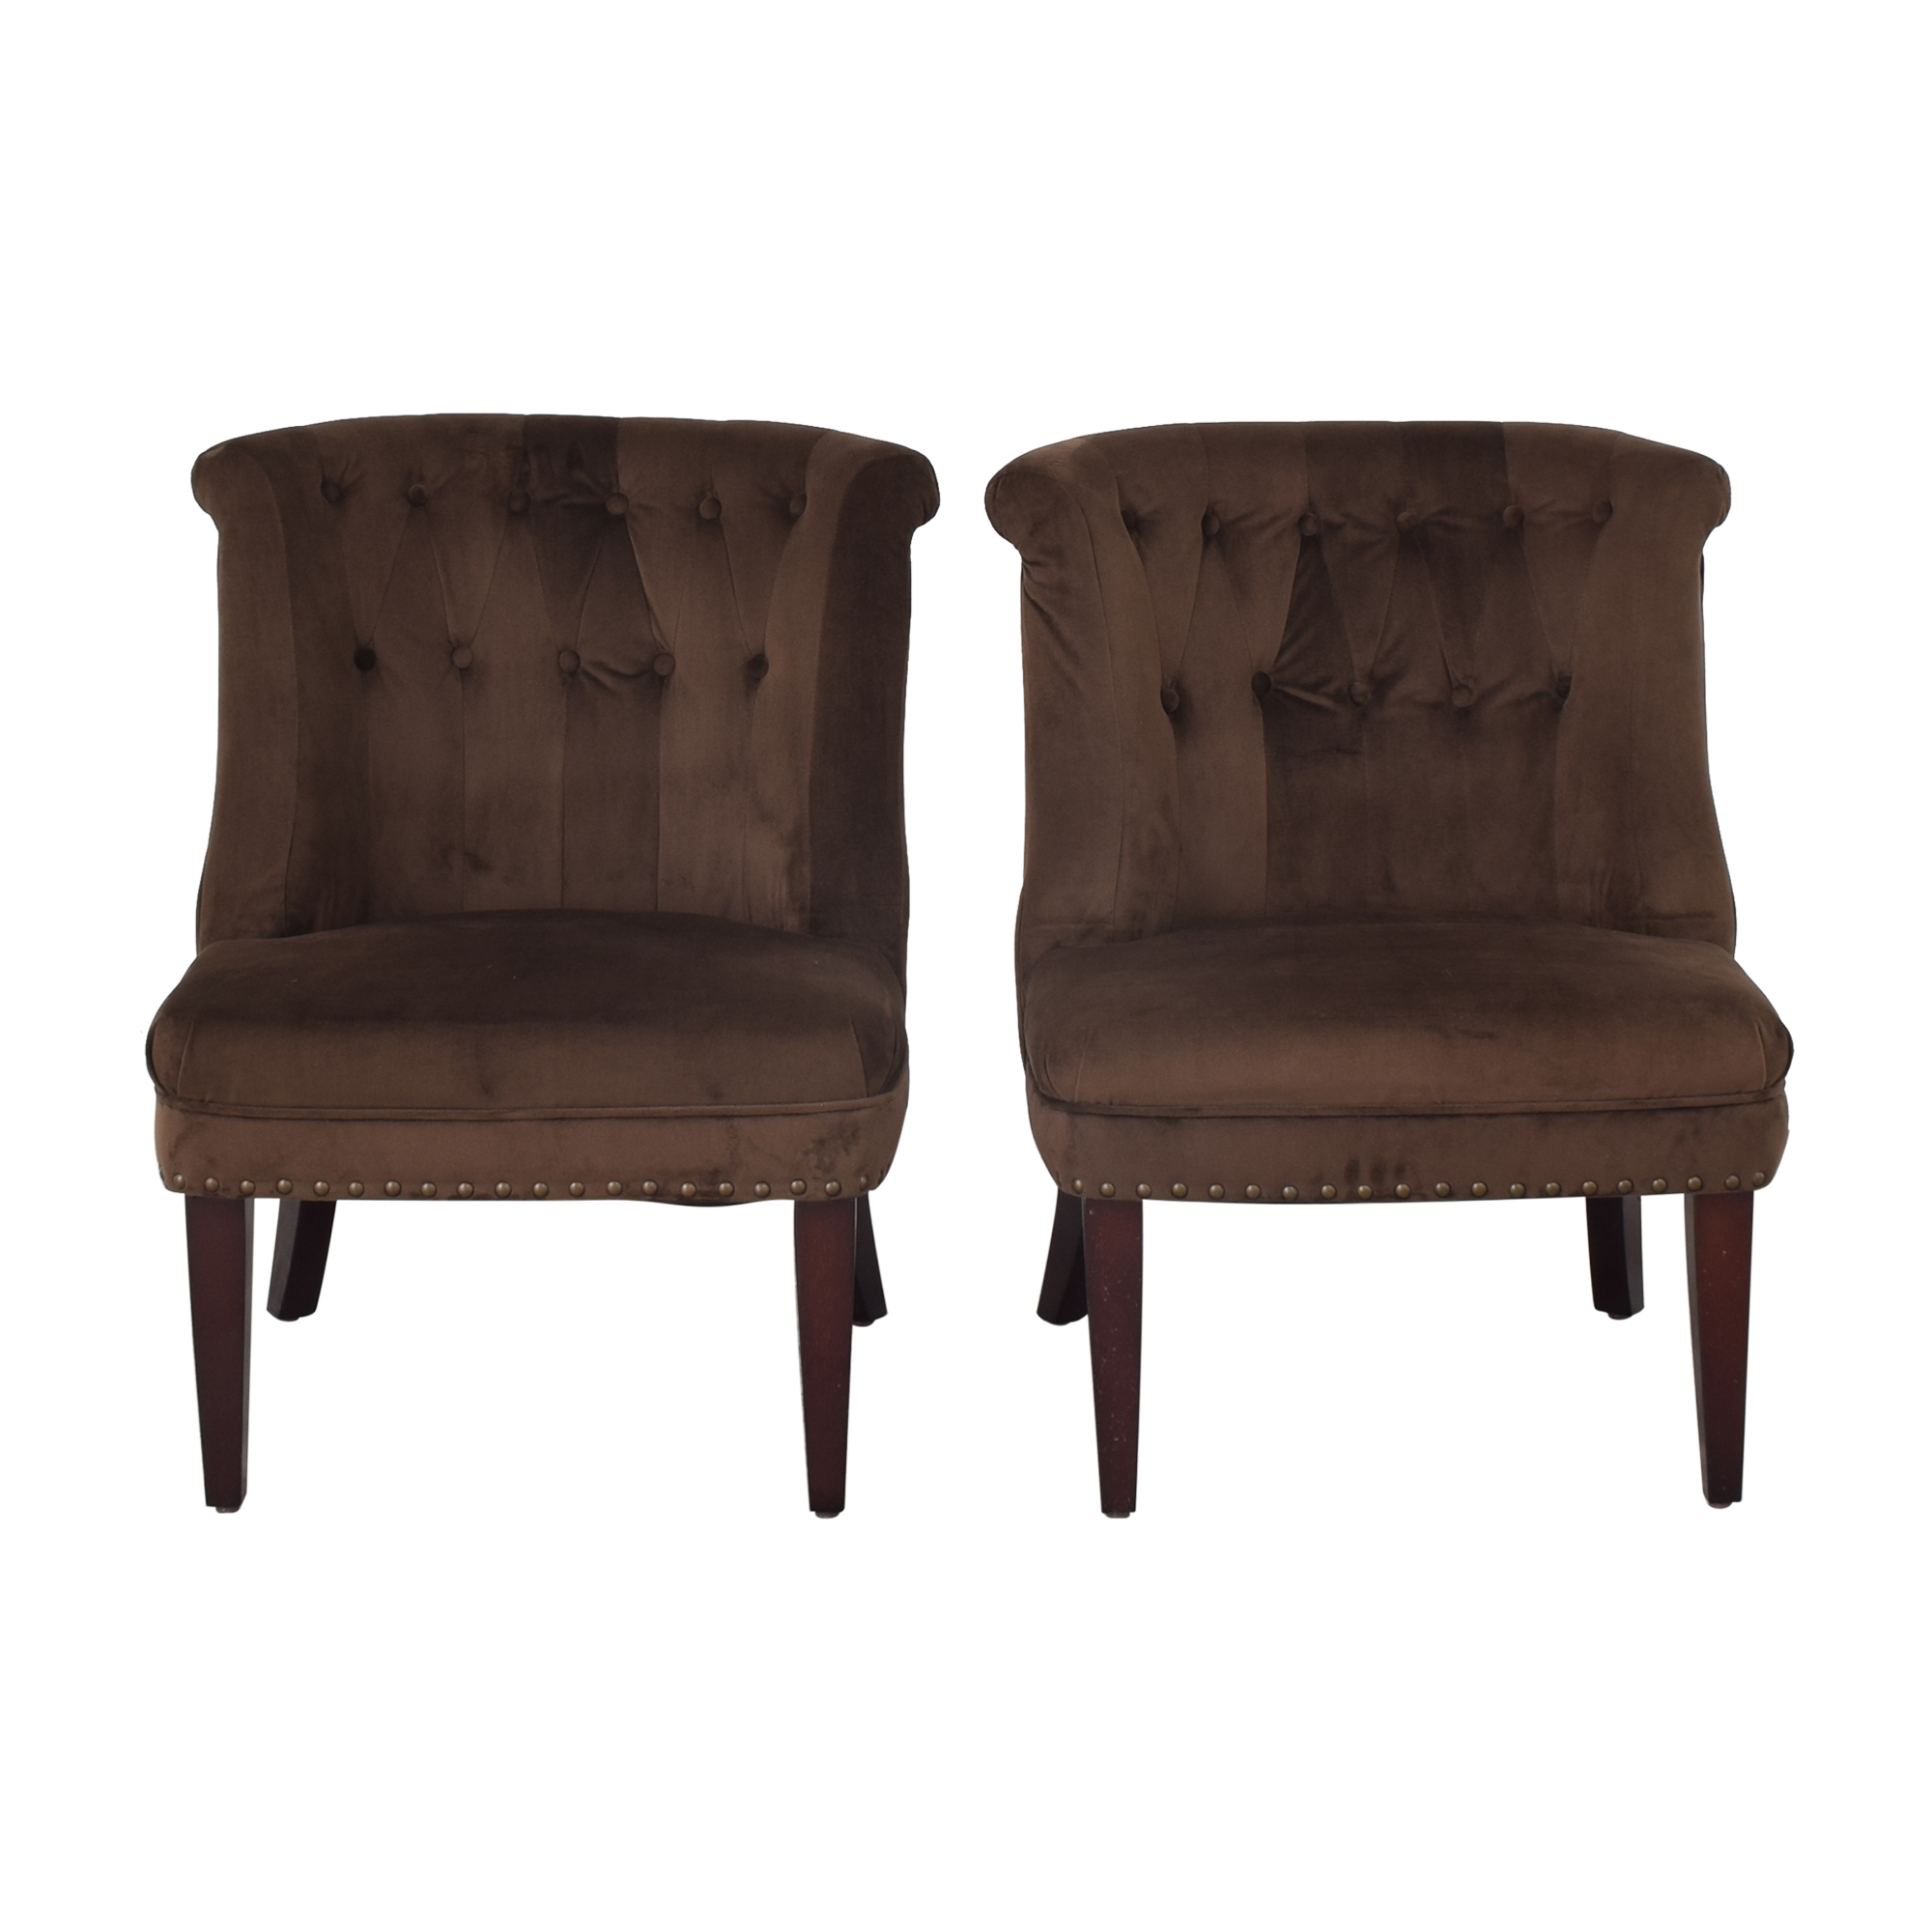 Office Star Office Star Accent Chairs dark brown